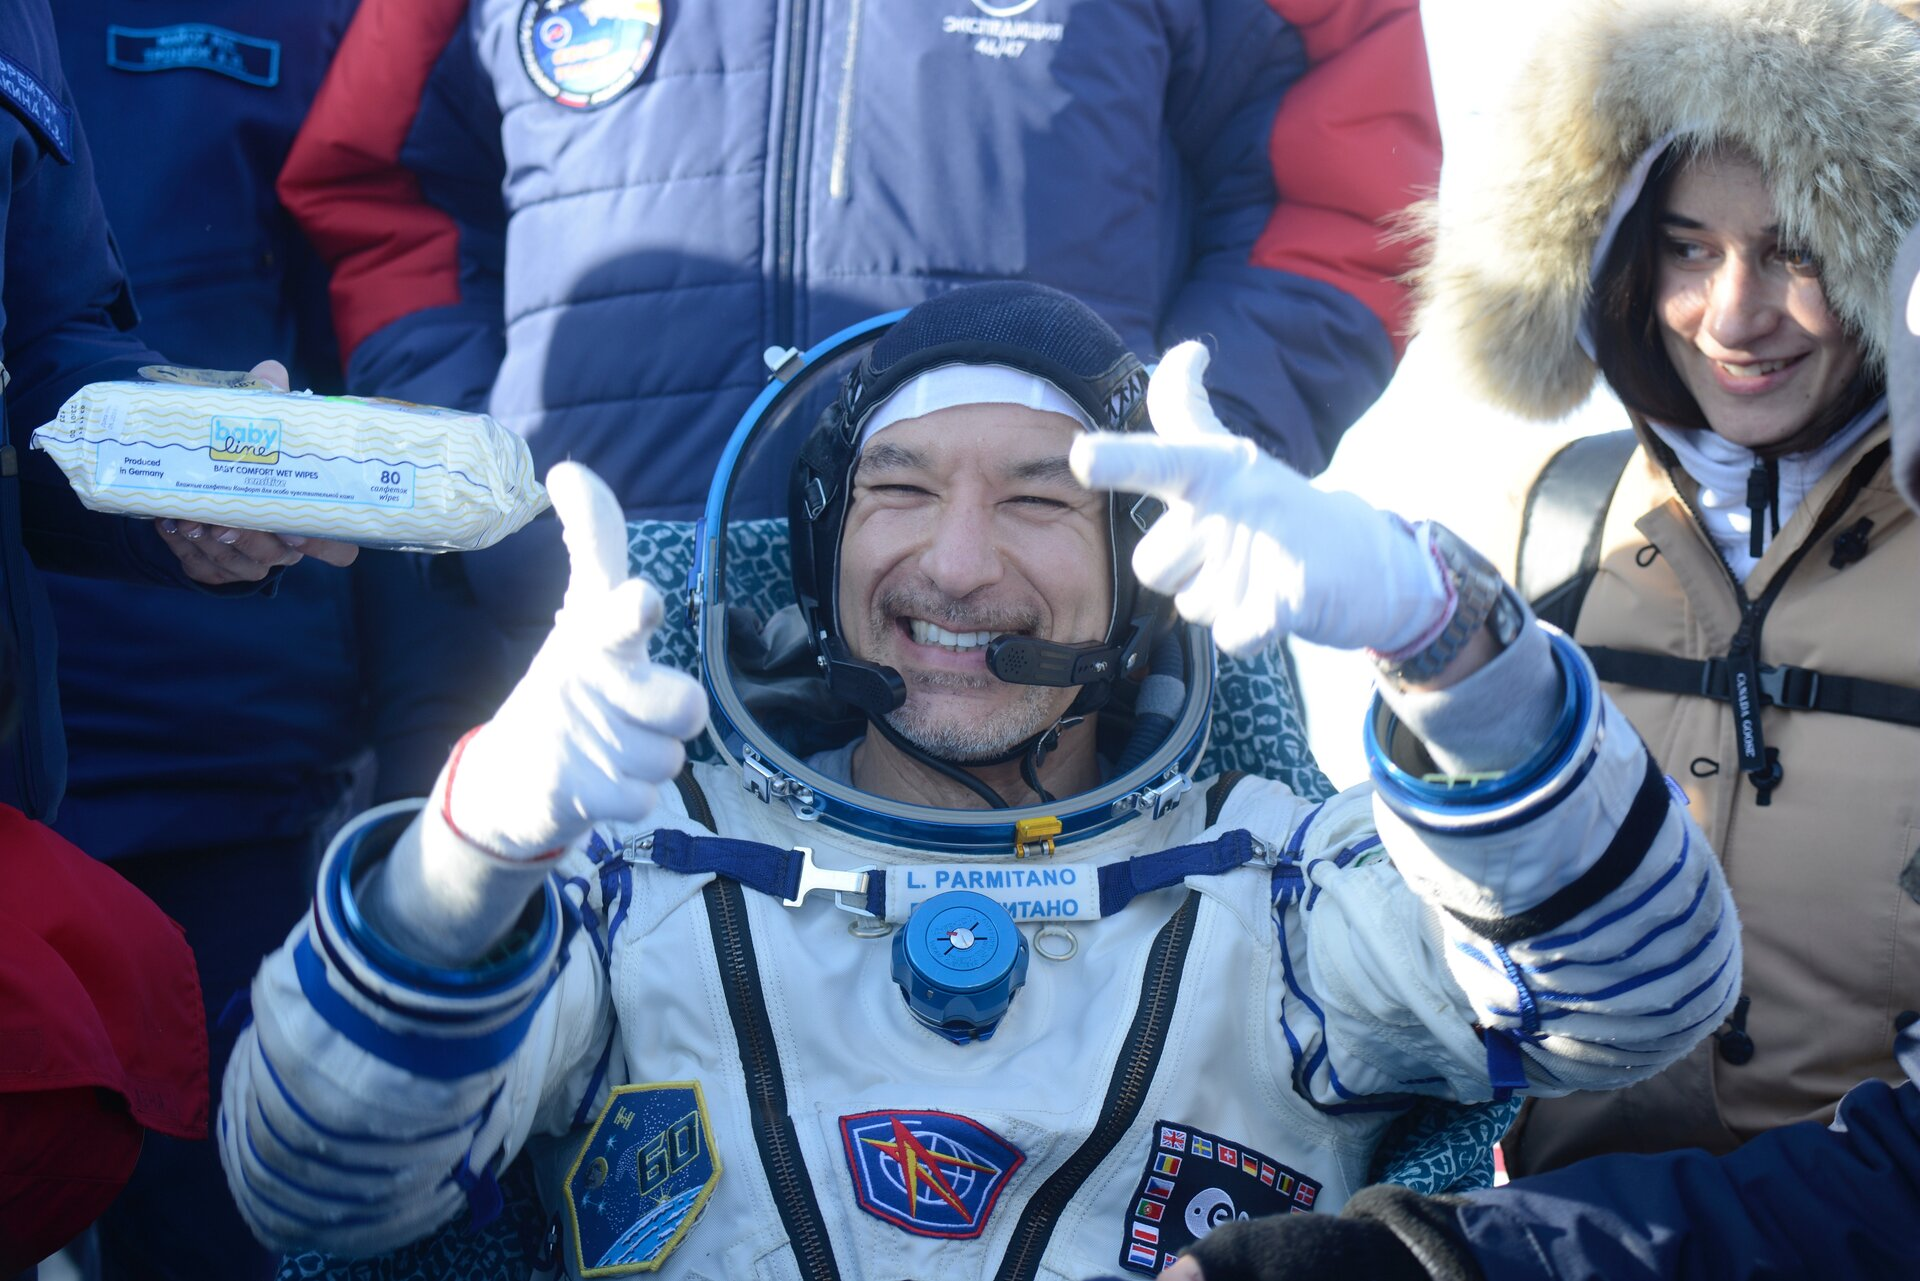 Luca Parmitano returns to Earth for second time